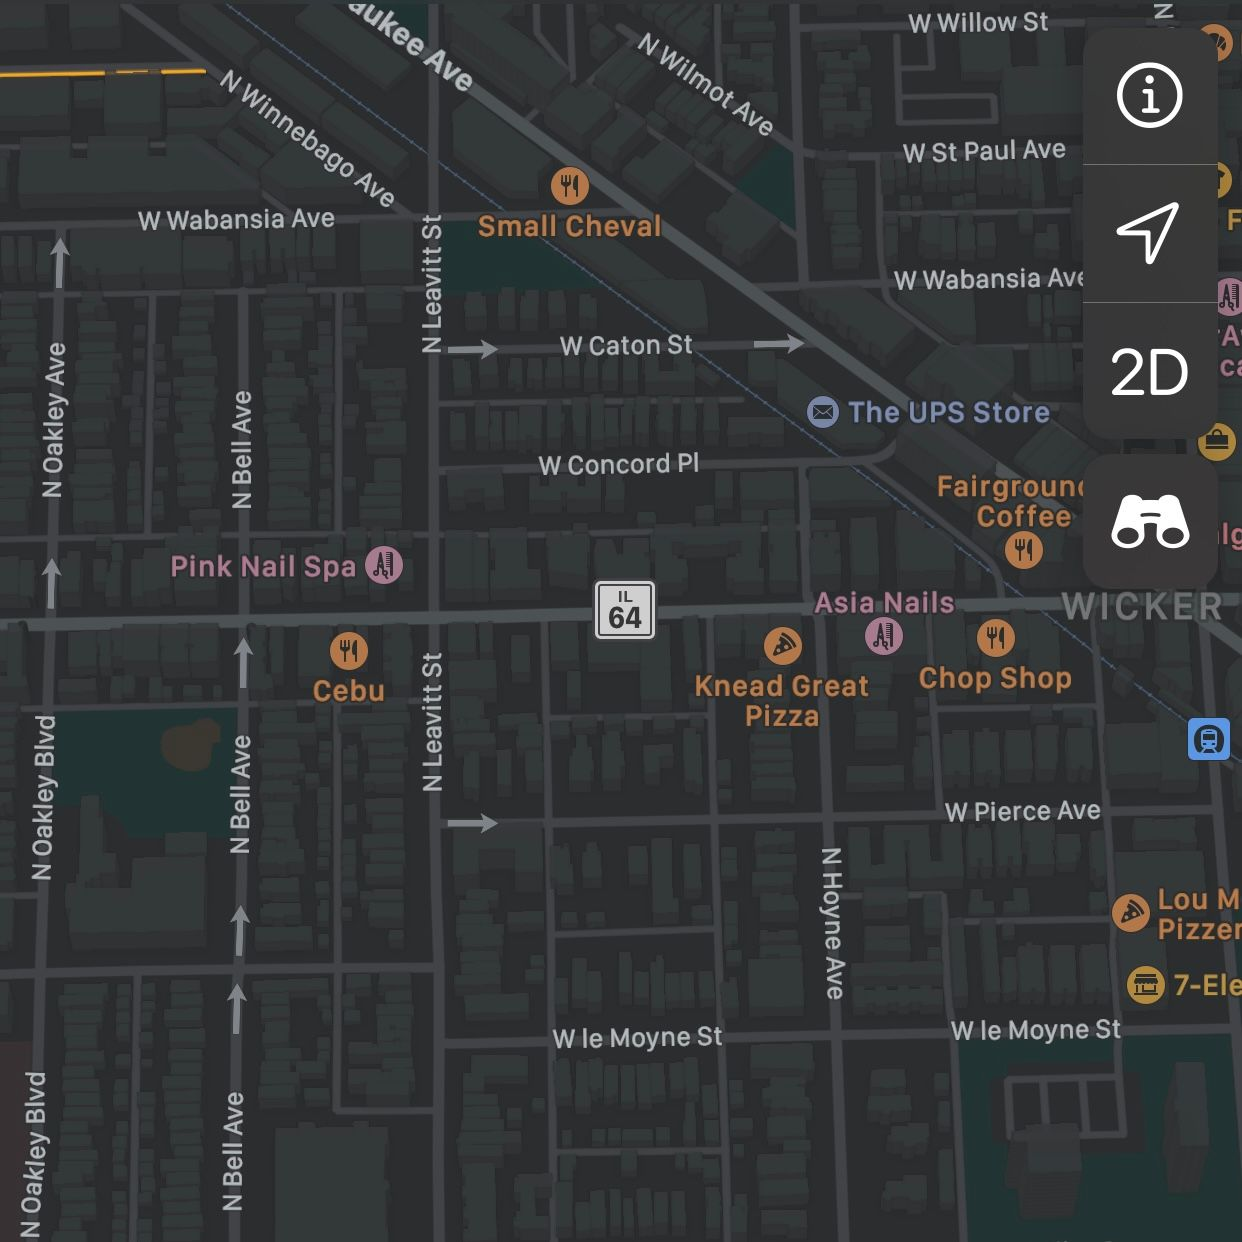 Apple Maps screenshot displaying North Avenue with IL-64 label.